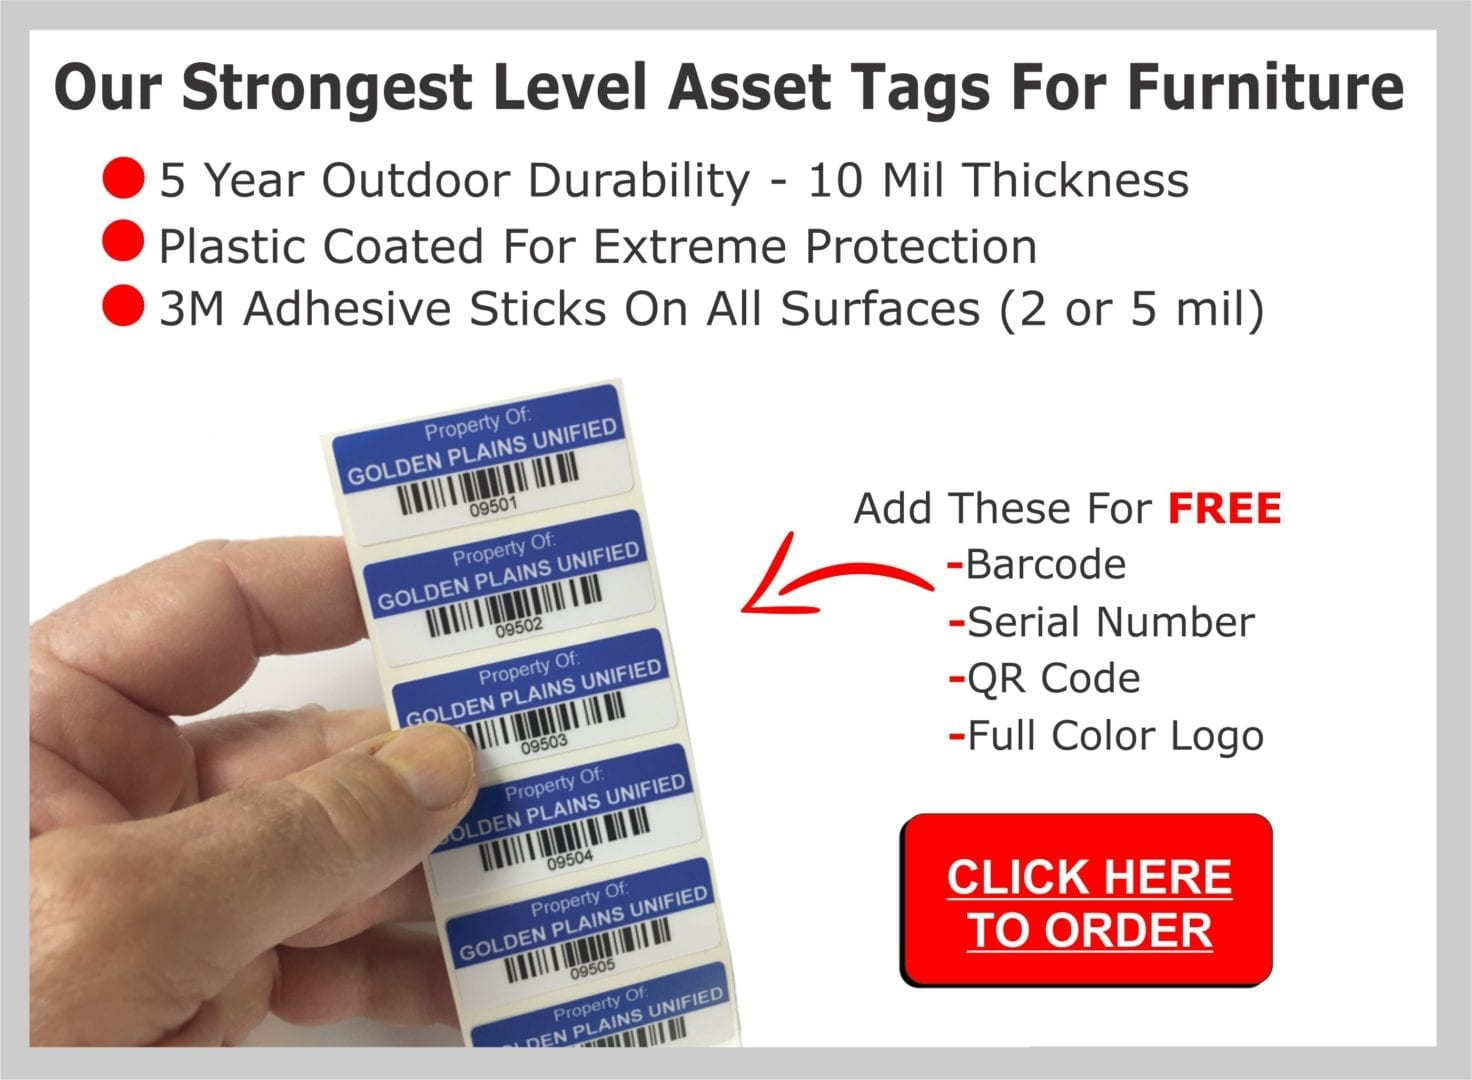 these are the features of our strongest level of asset tags for furniture